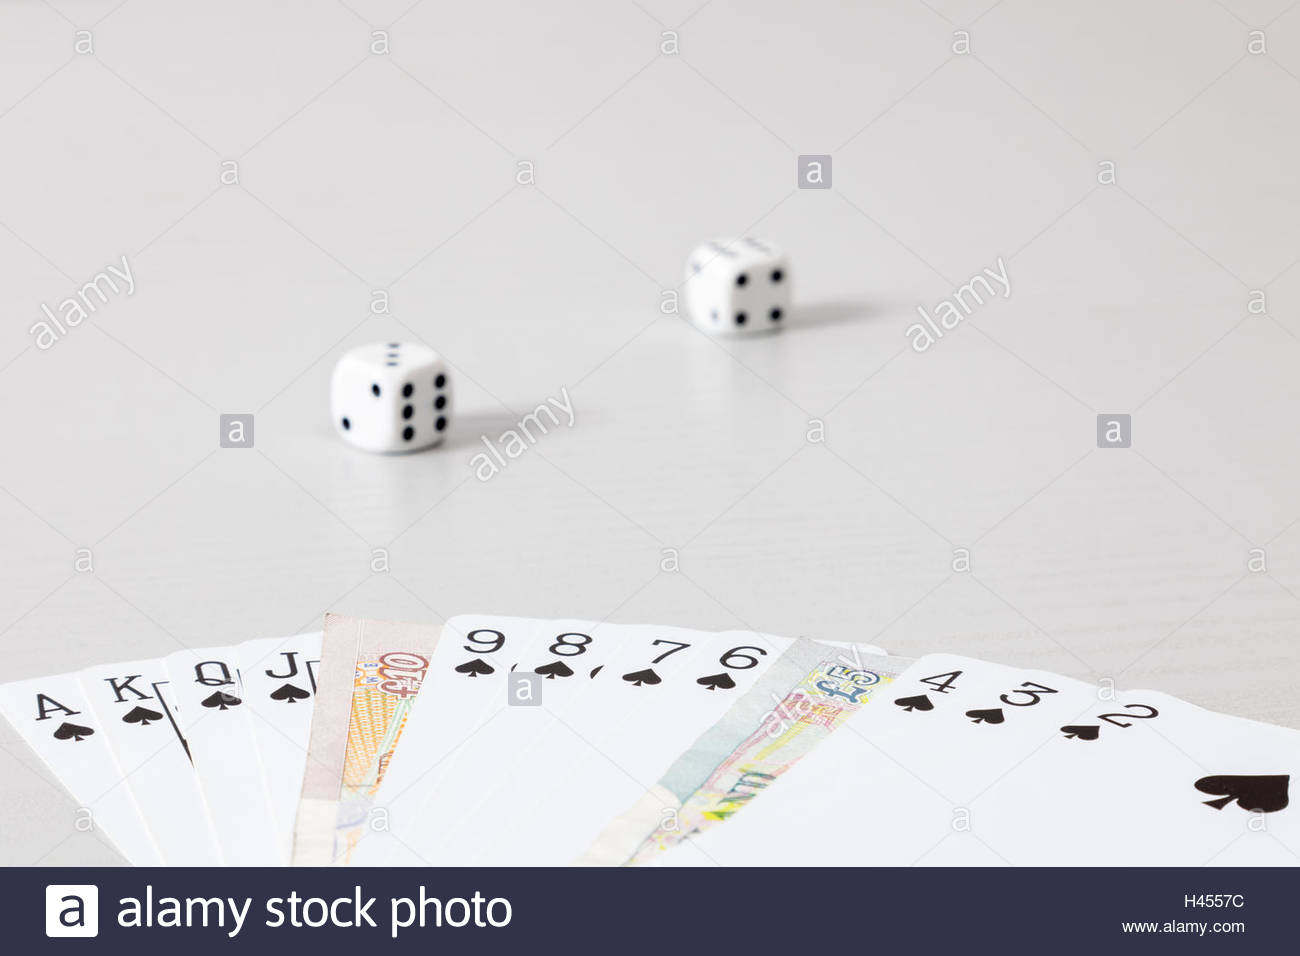 Full suit of spades with banknotes substitutes for some cards - Stock Image